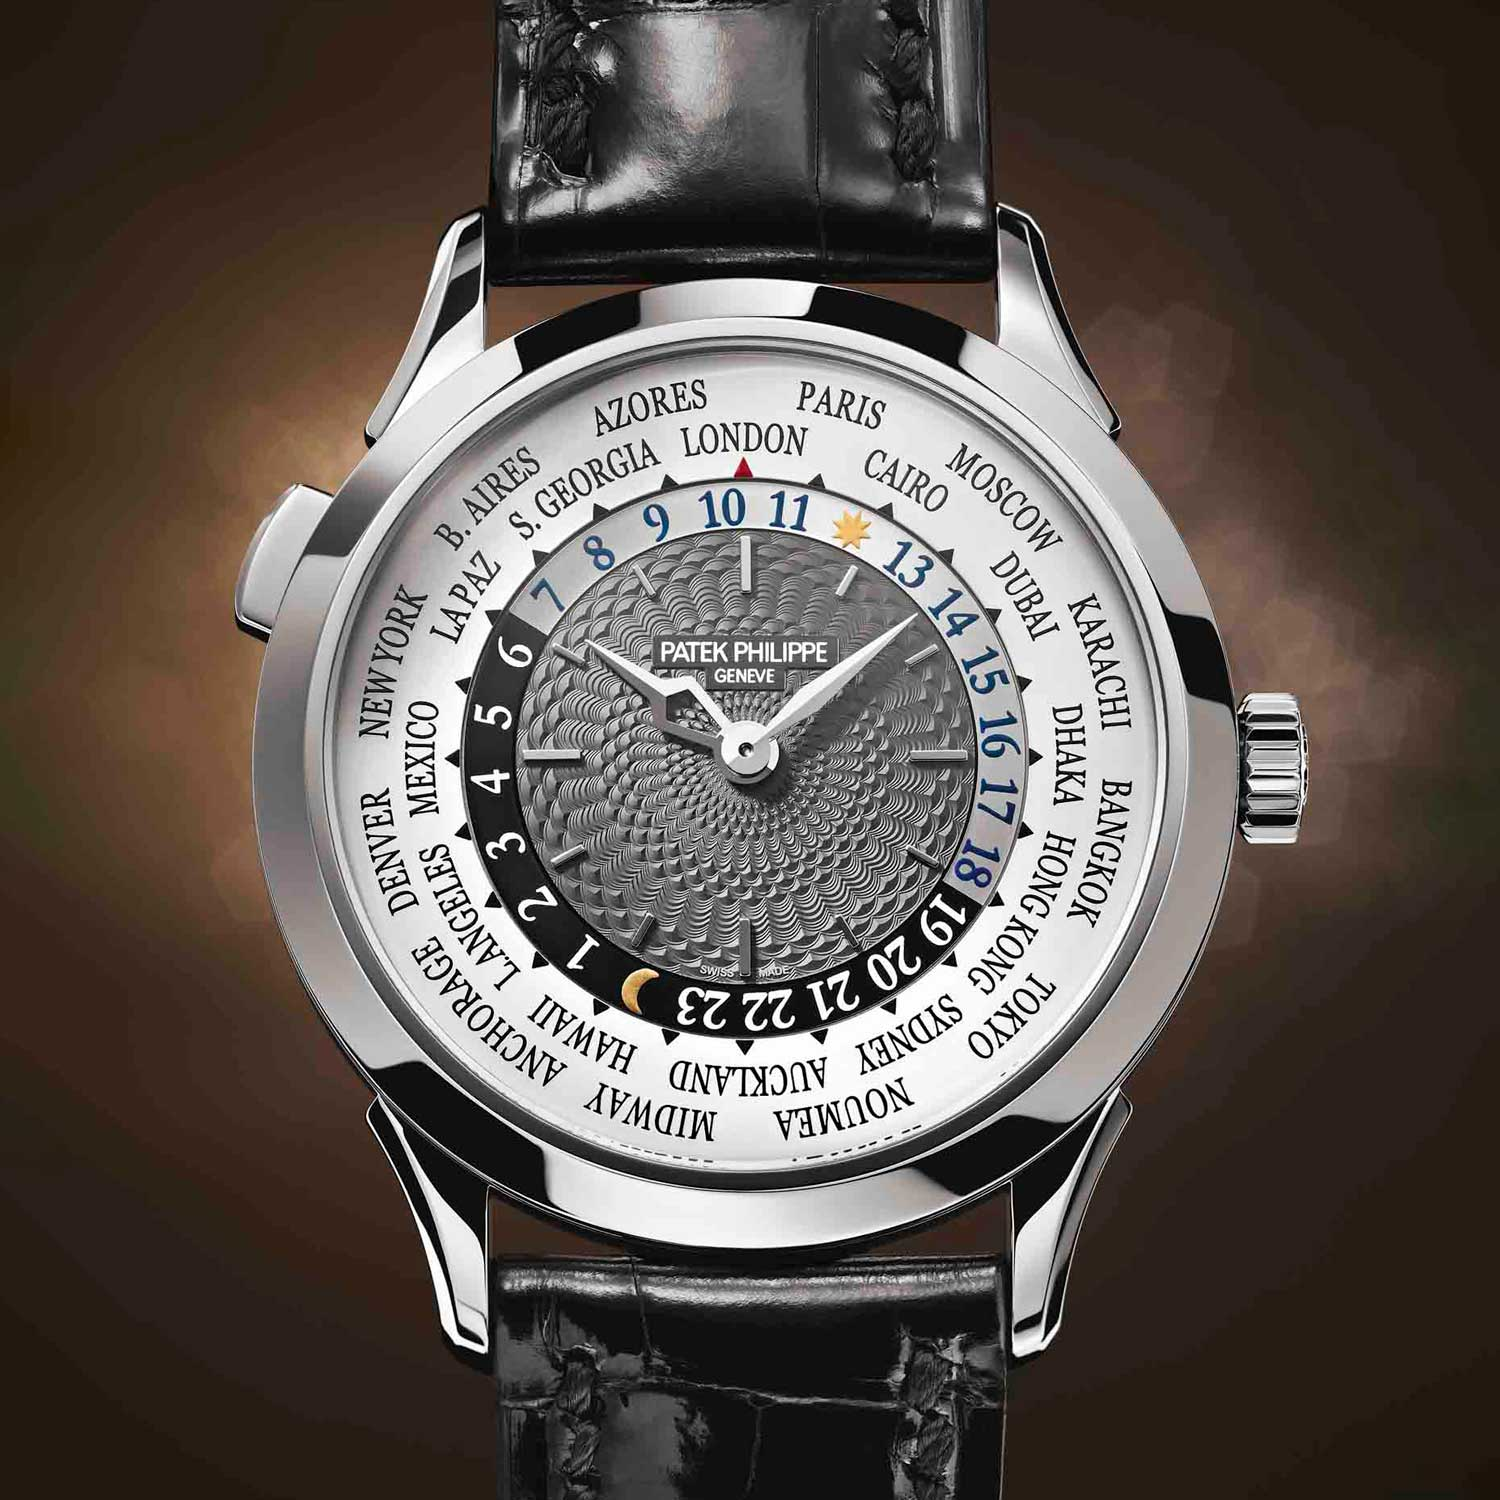 The ref. 5230 was the first modern World Timer without crown guards